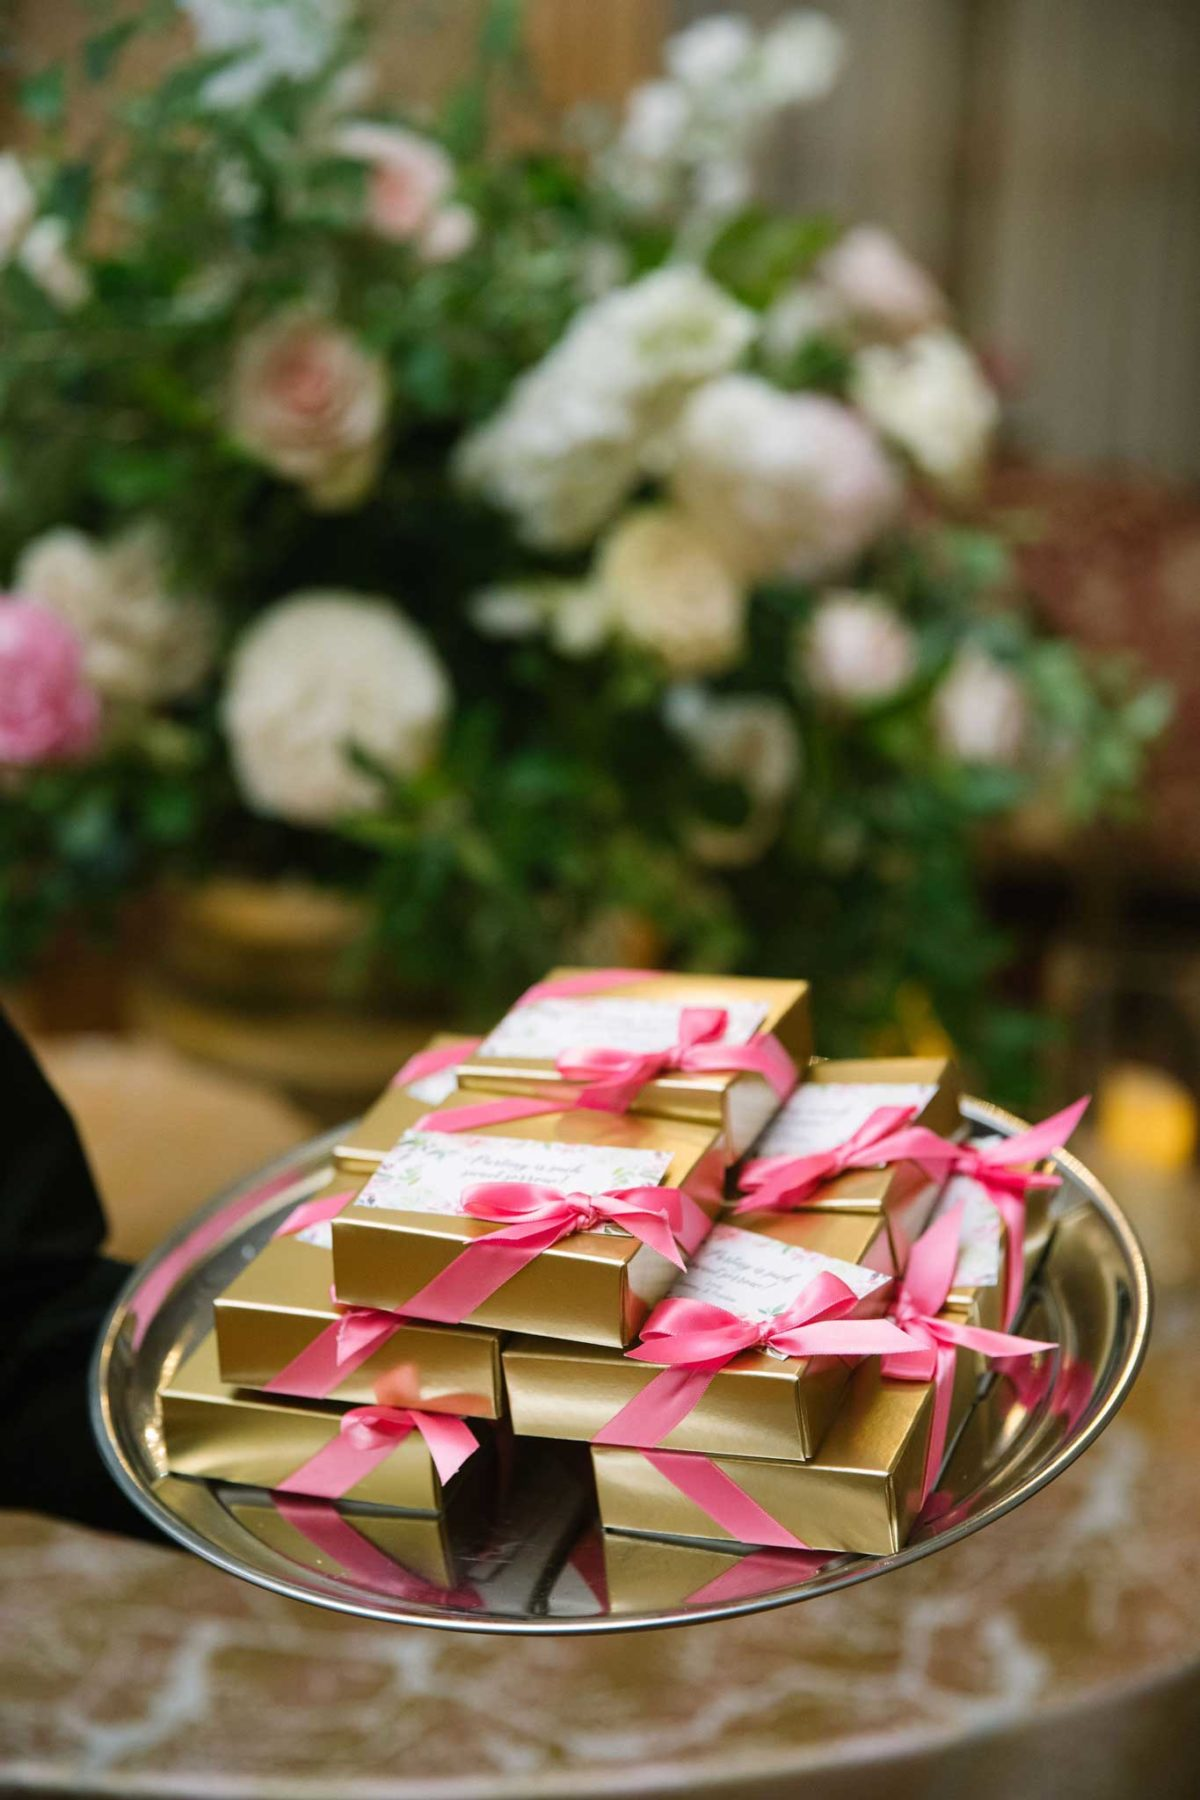 Wedding Favors: gold foil chocolate boxes tied with a pink ribbon, adorned with a handpainted favor tag.